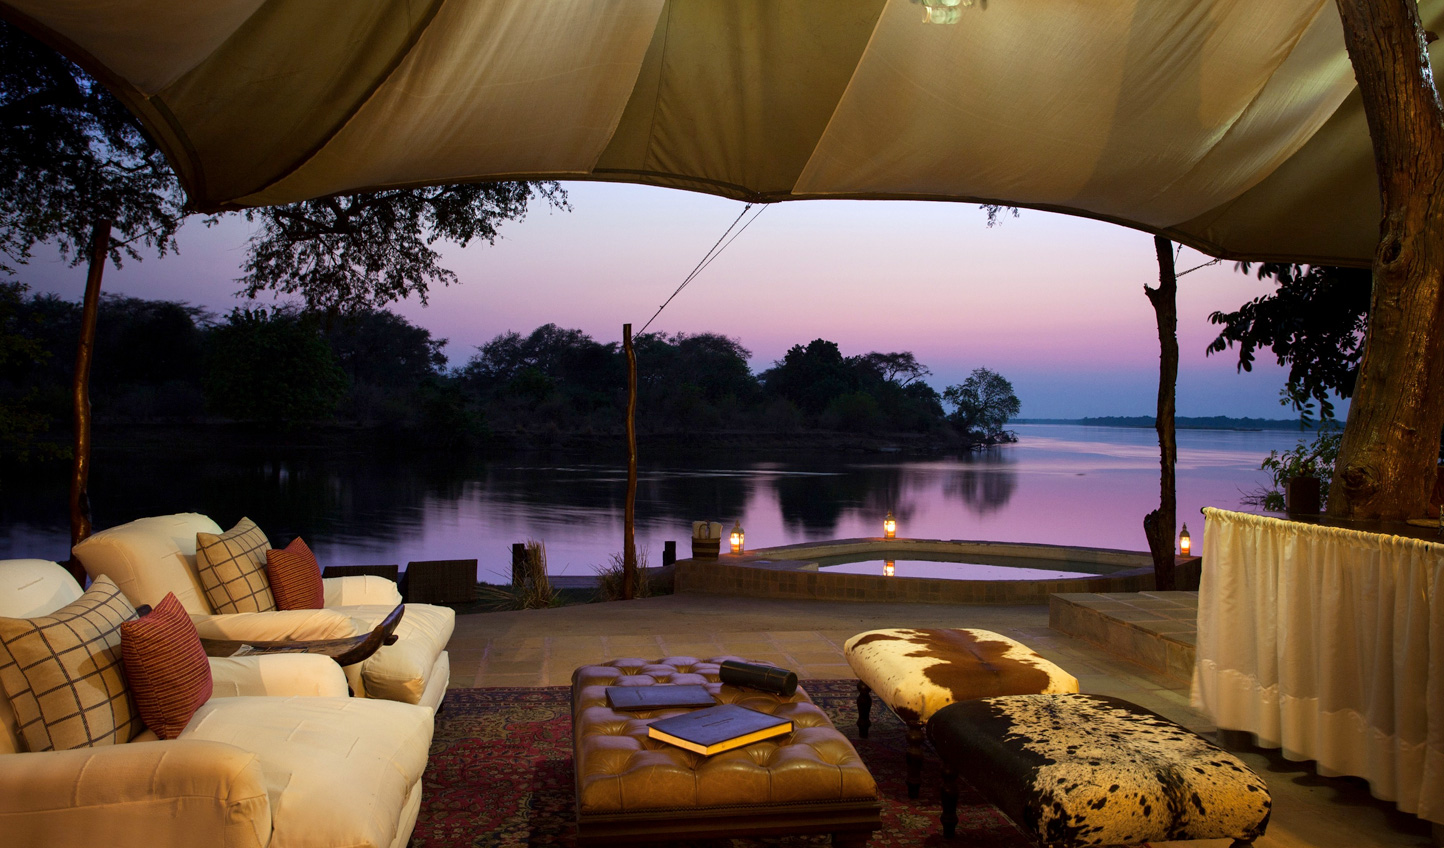 See incredible Zambian sunsets over the river